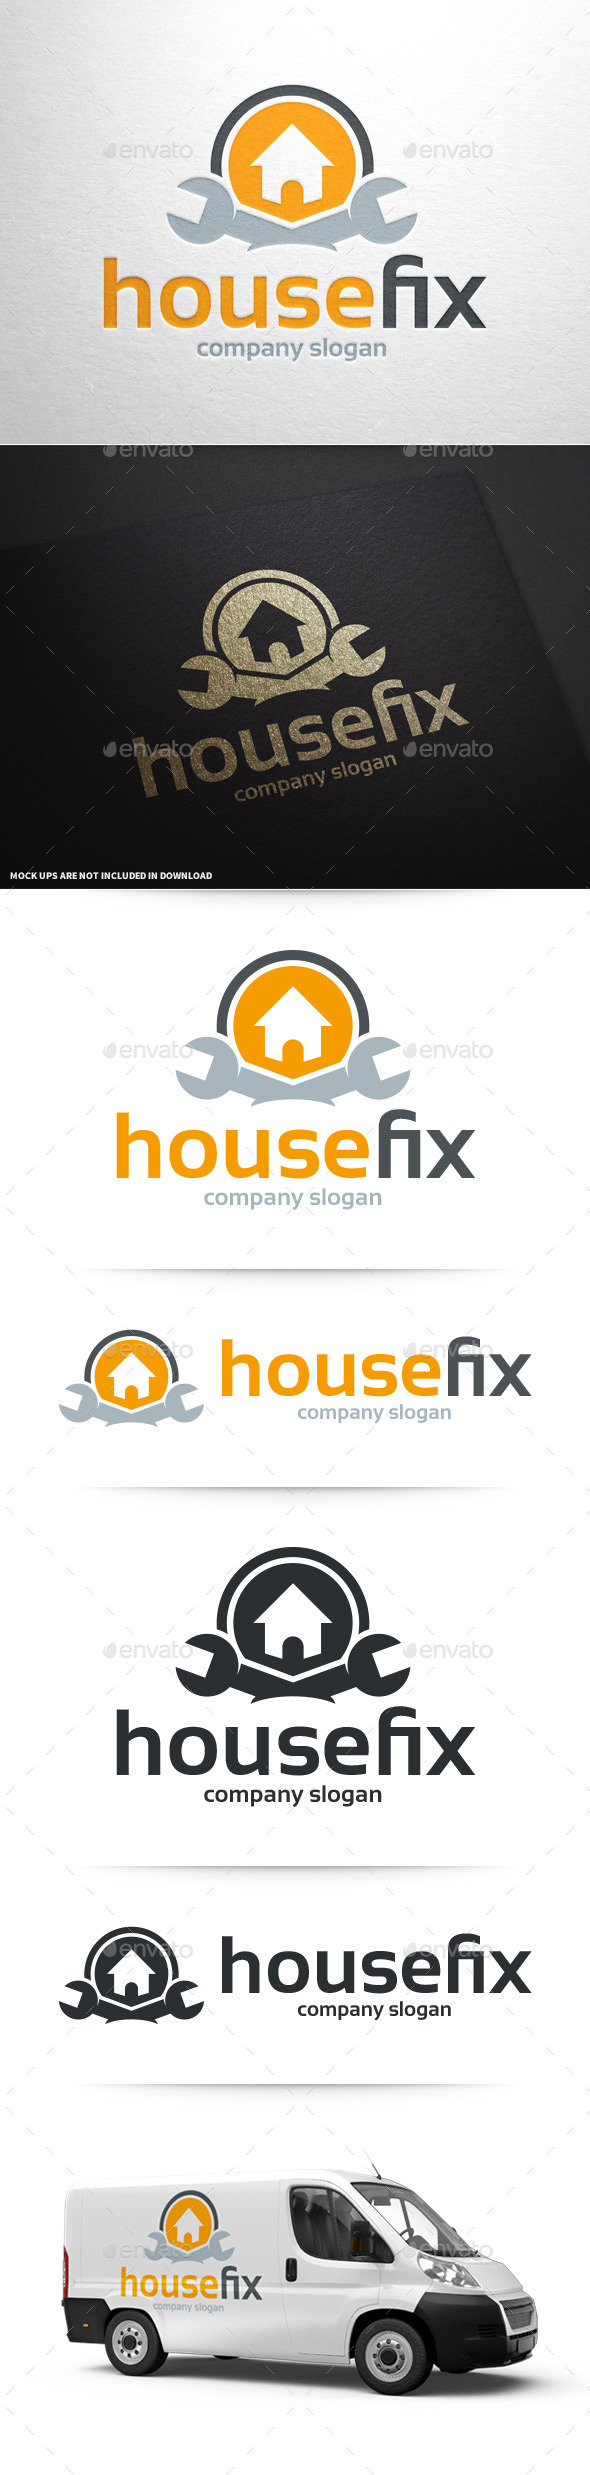 Home remodeling logo remodeling logo clipart - House Fix Logo Template